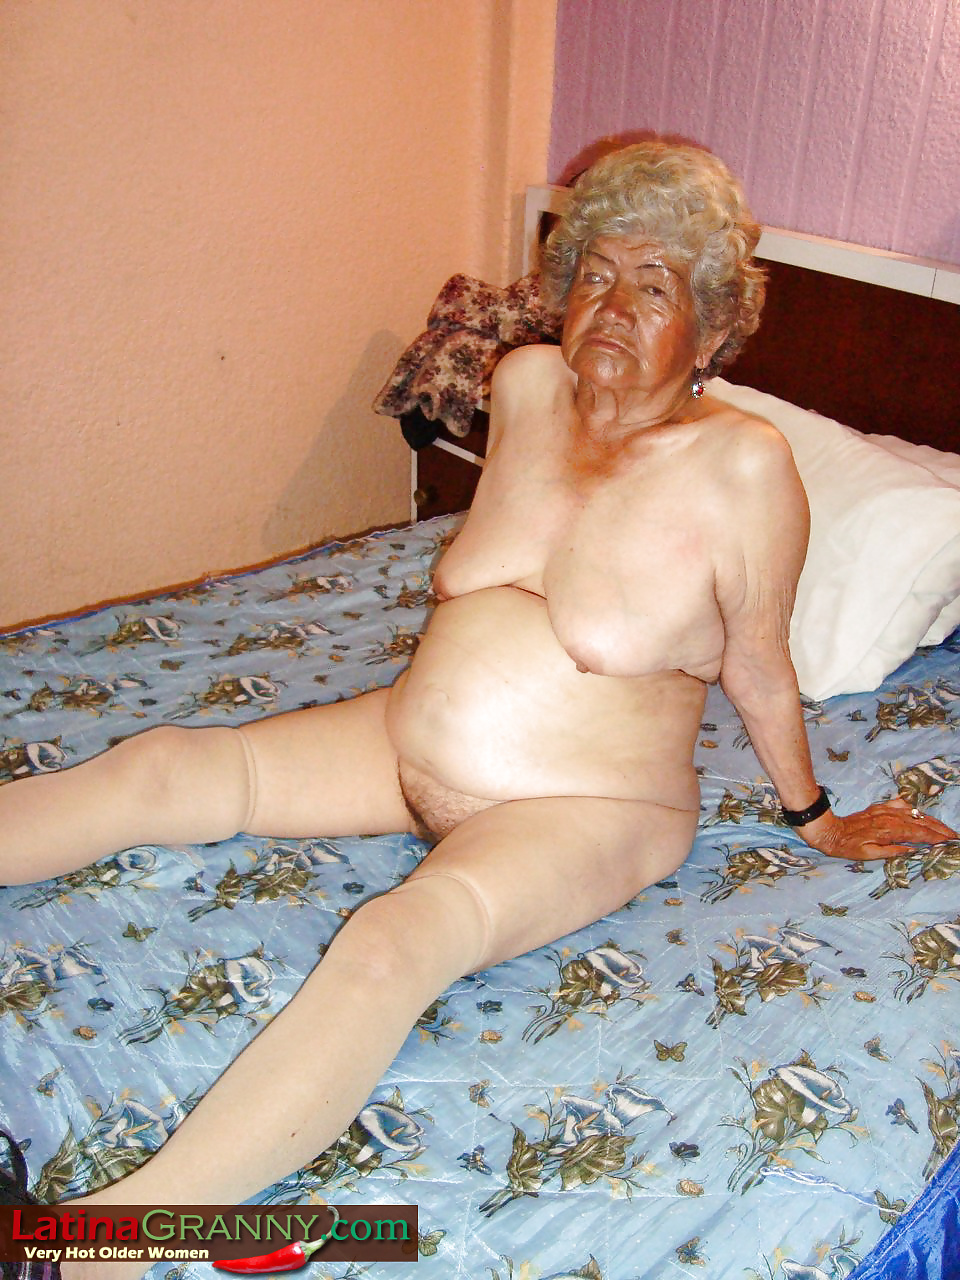 Very Old Naked Granny - 15 Pics - Xhamstercom-9995